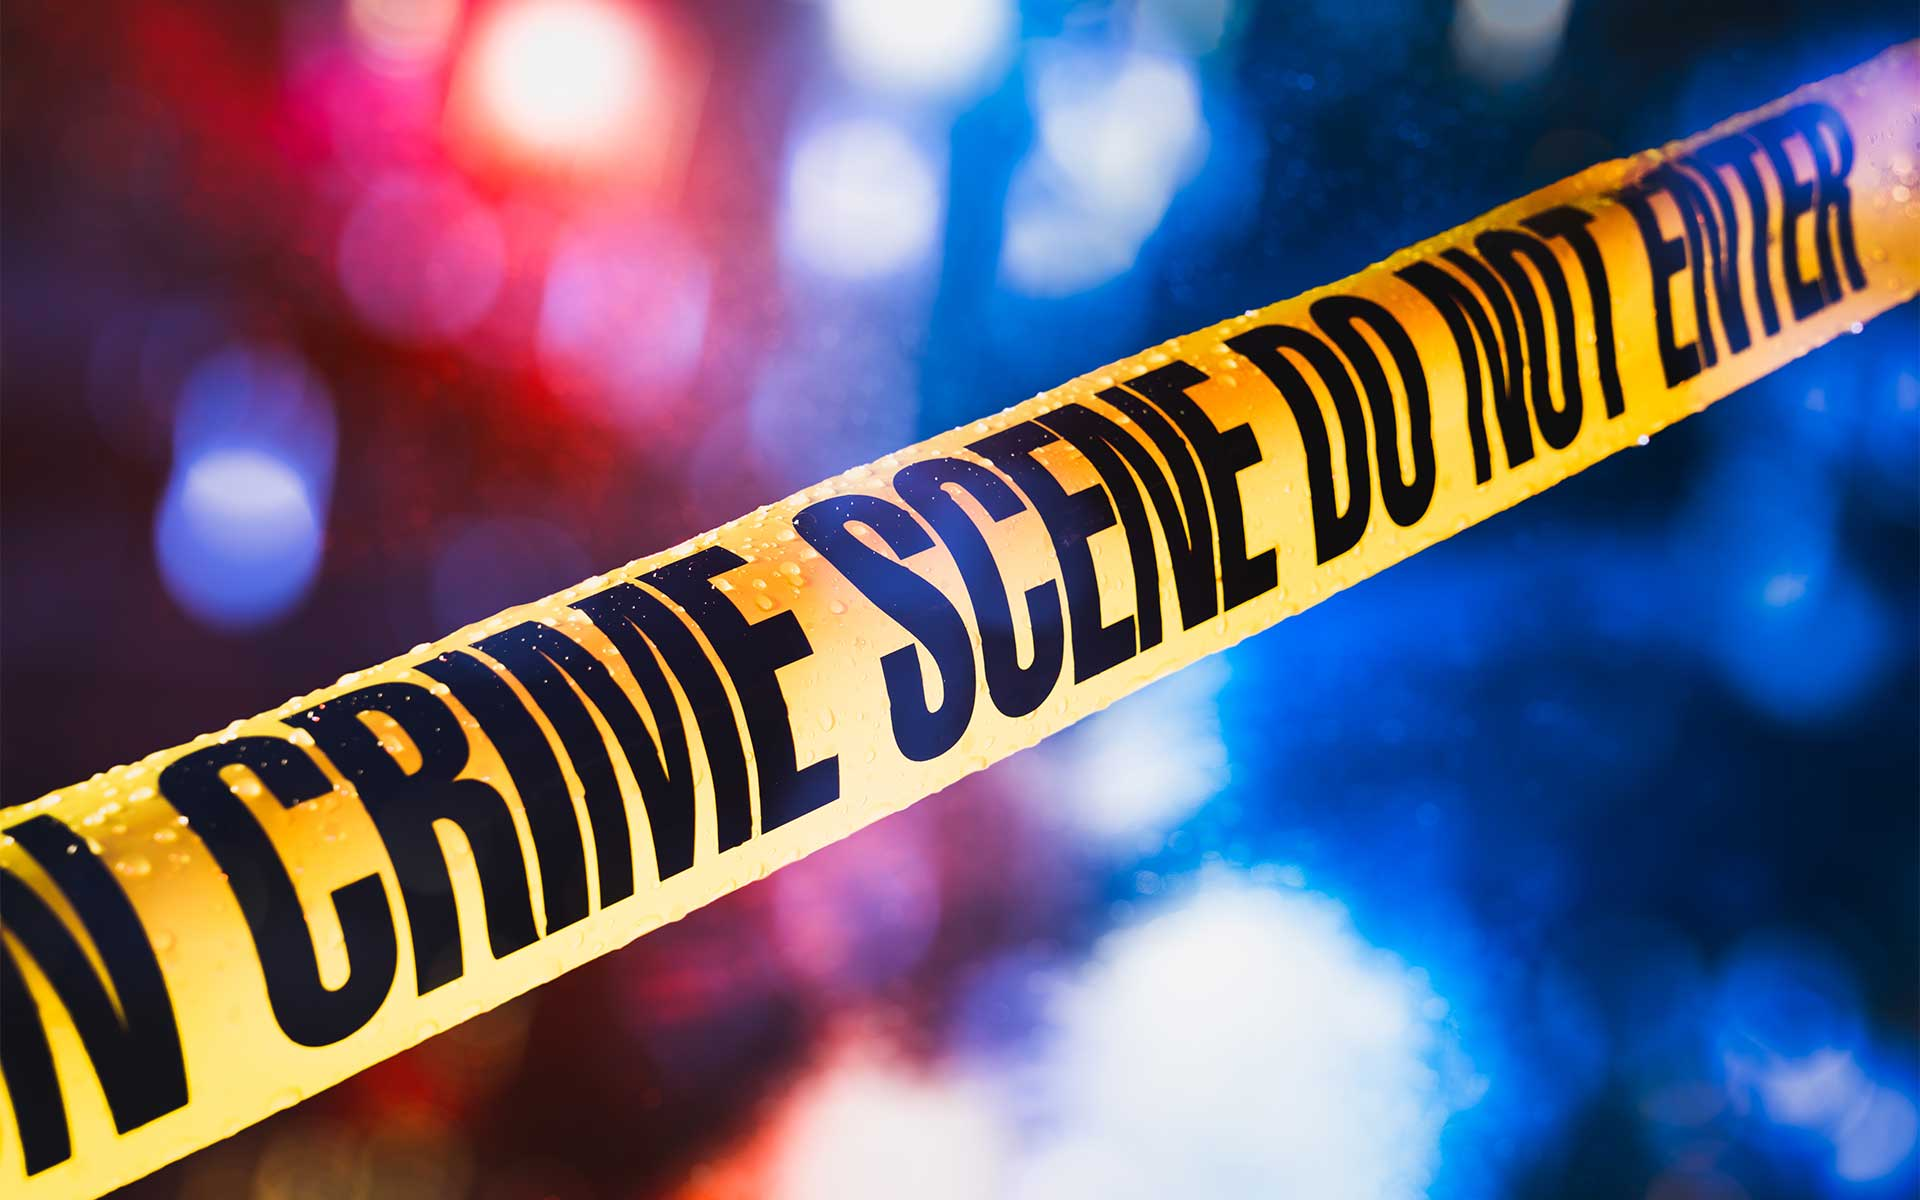 The Difference Between Murder, Manslaughter, and Homicide Under Texas Law